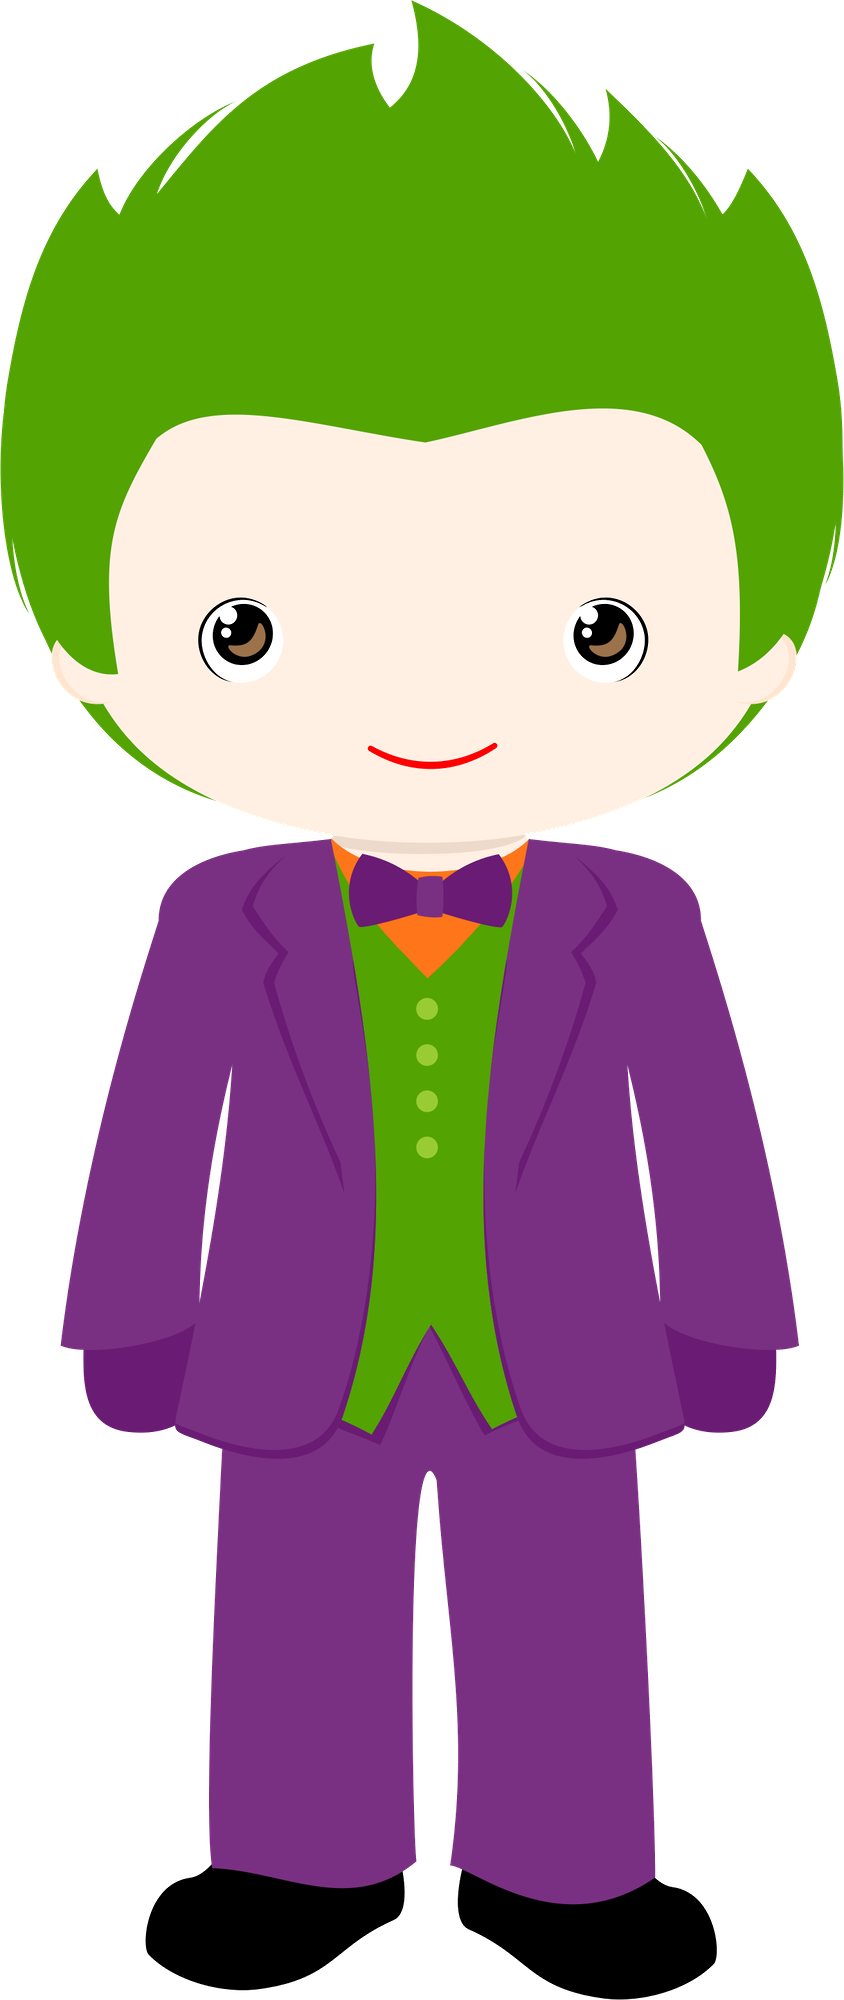 the joker cute images pinterest joker hero and superhero rh pinterest com joker clipart batman joker clip art free